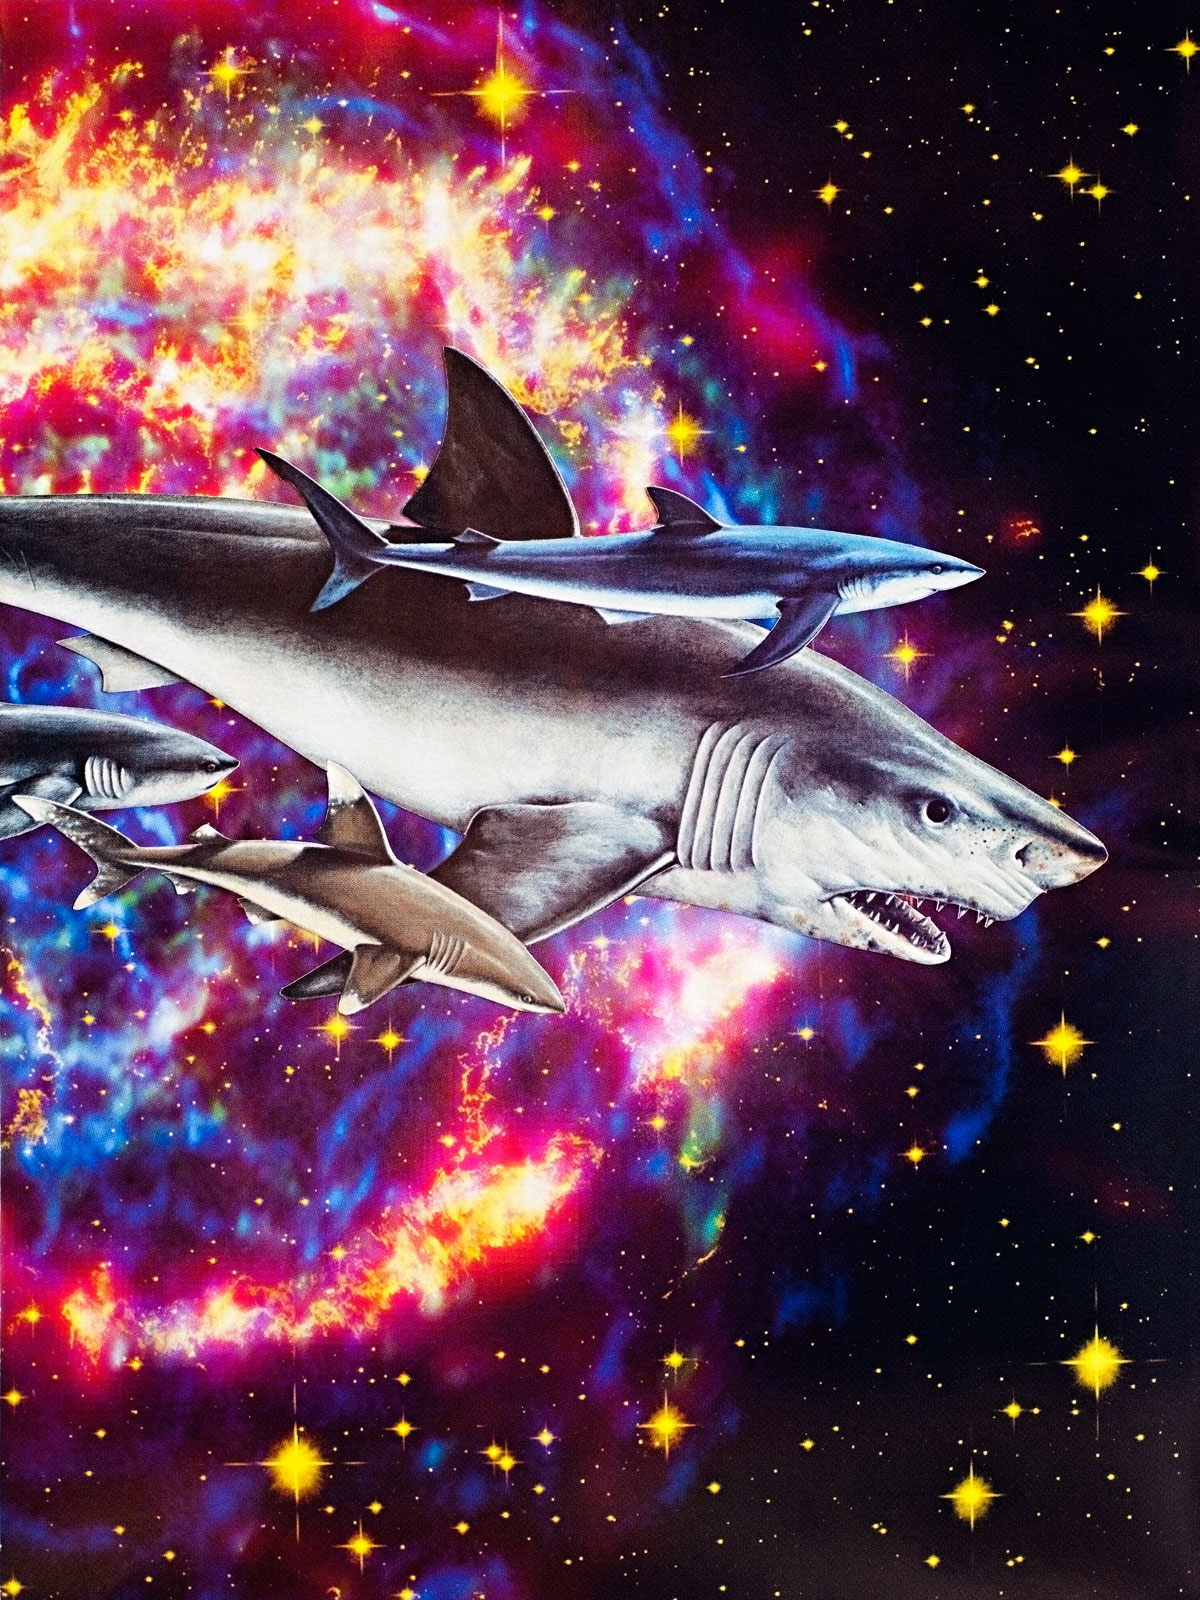 Animal Friends - Space Sharks